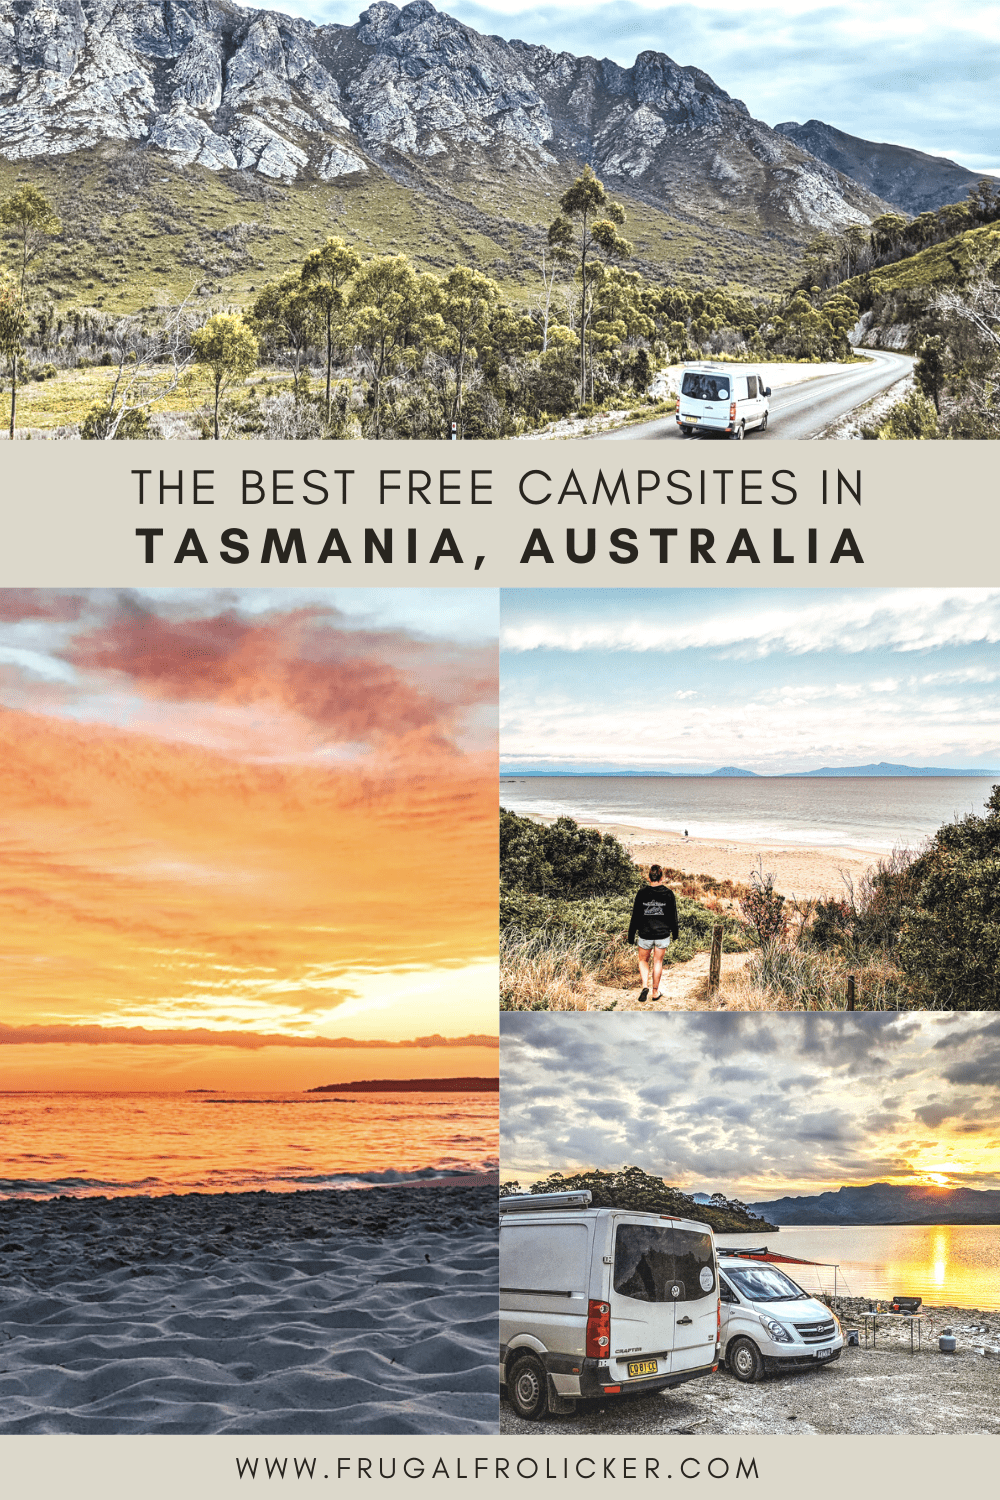 The Best Free Camping in Tasmania